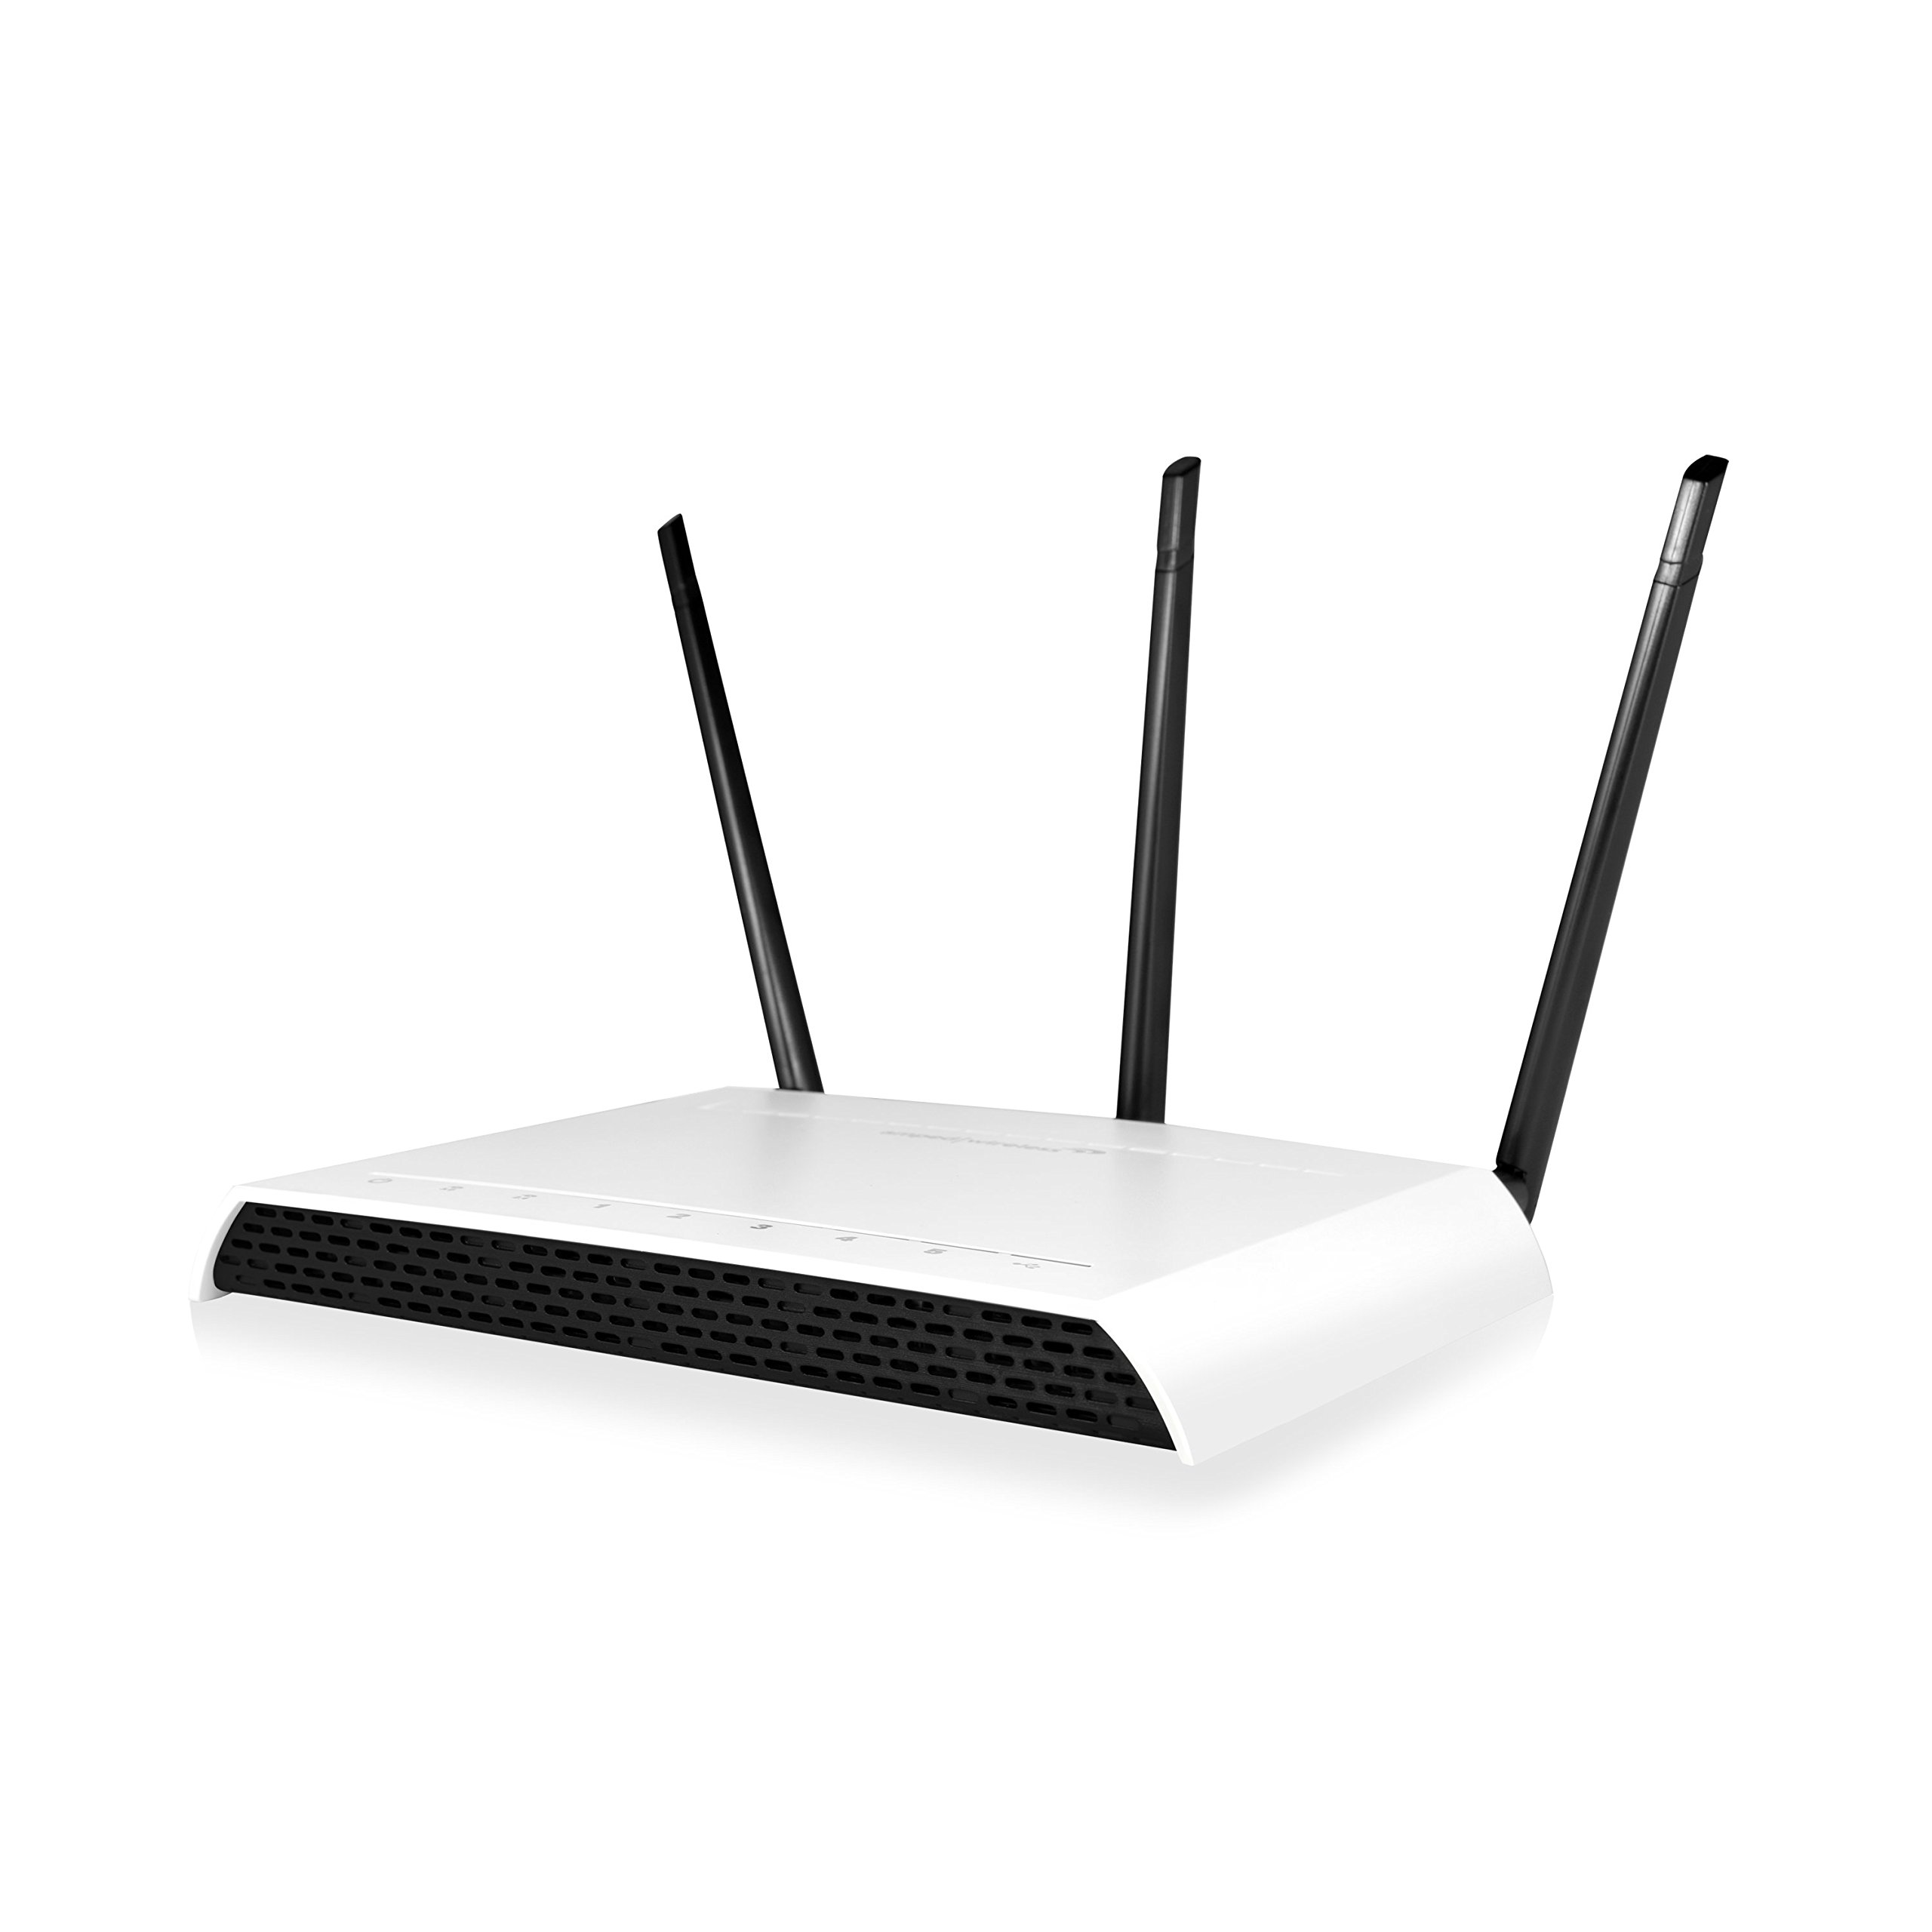 Amped Wireless High Power 800mW AC1750 Wi-Fi Range Extender (RE1750A) by Amped (Image #1)